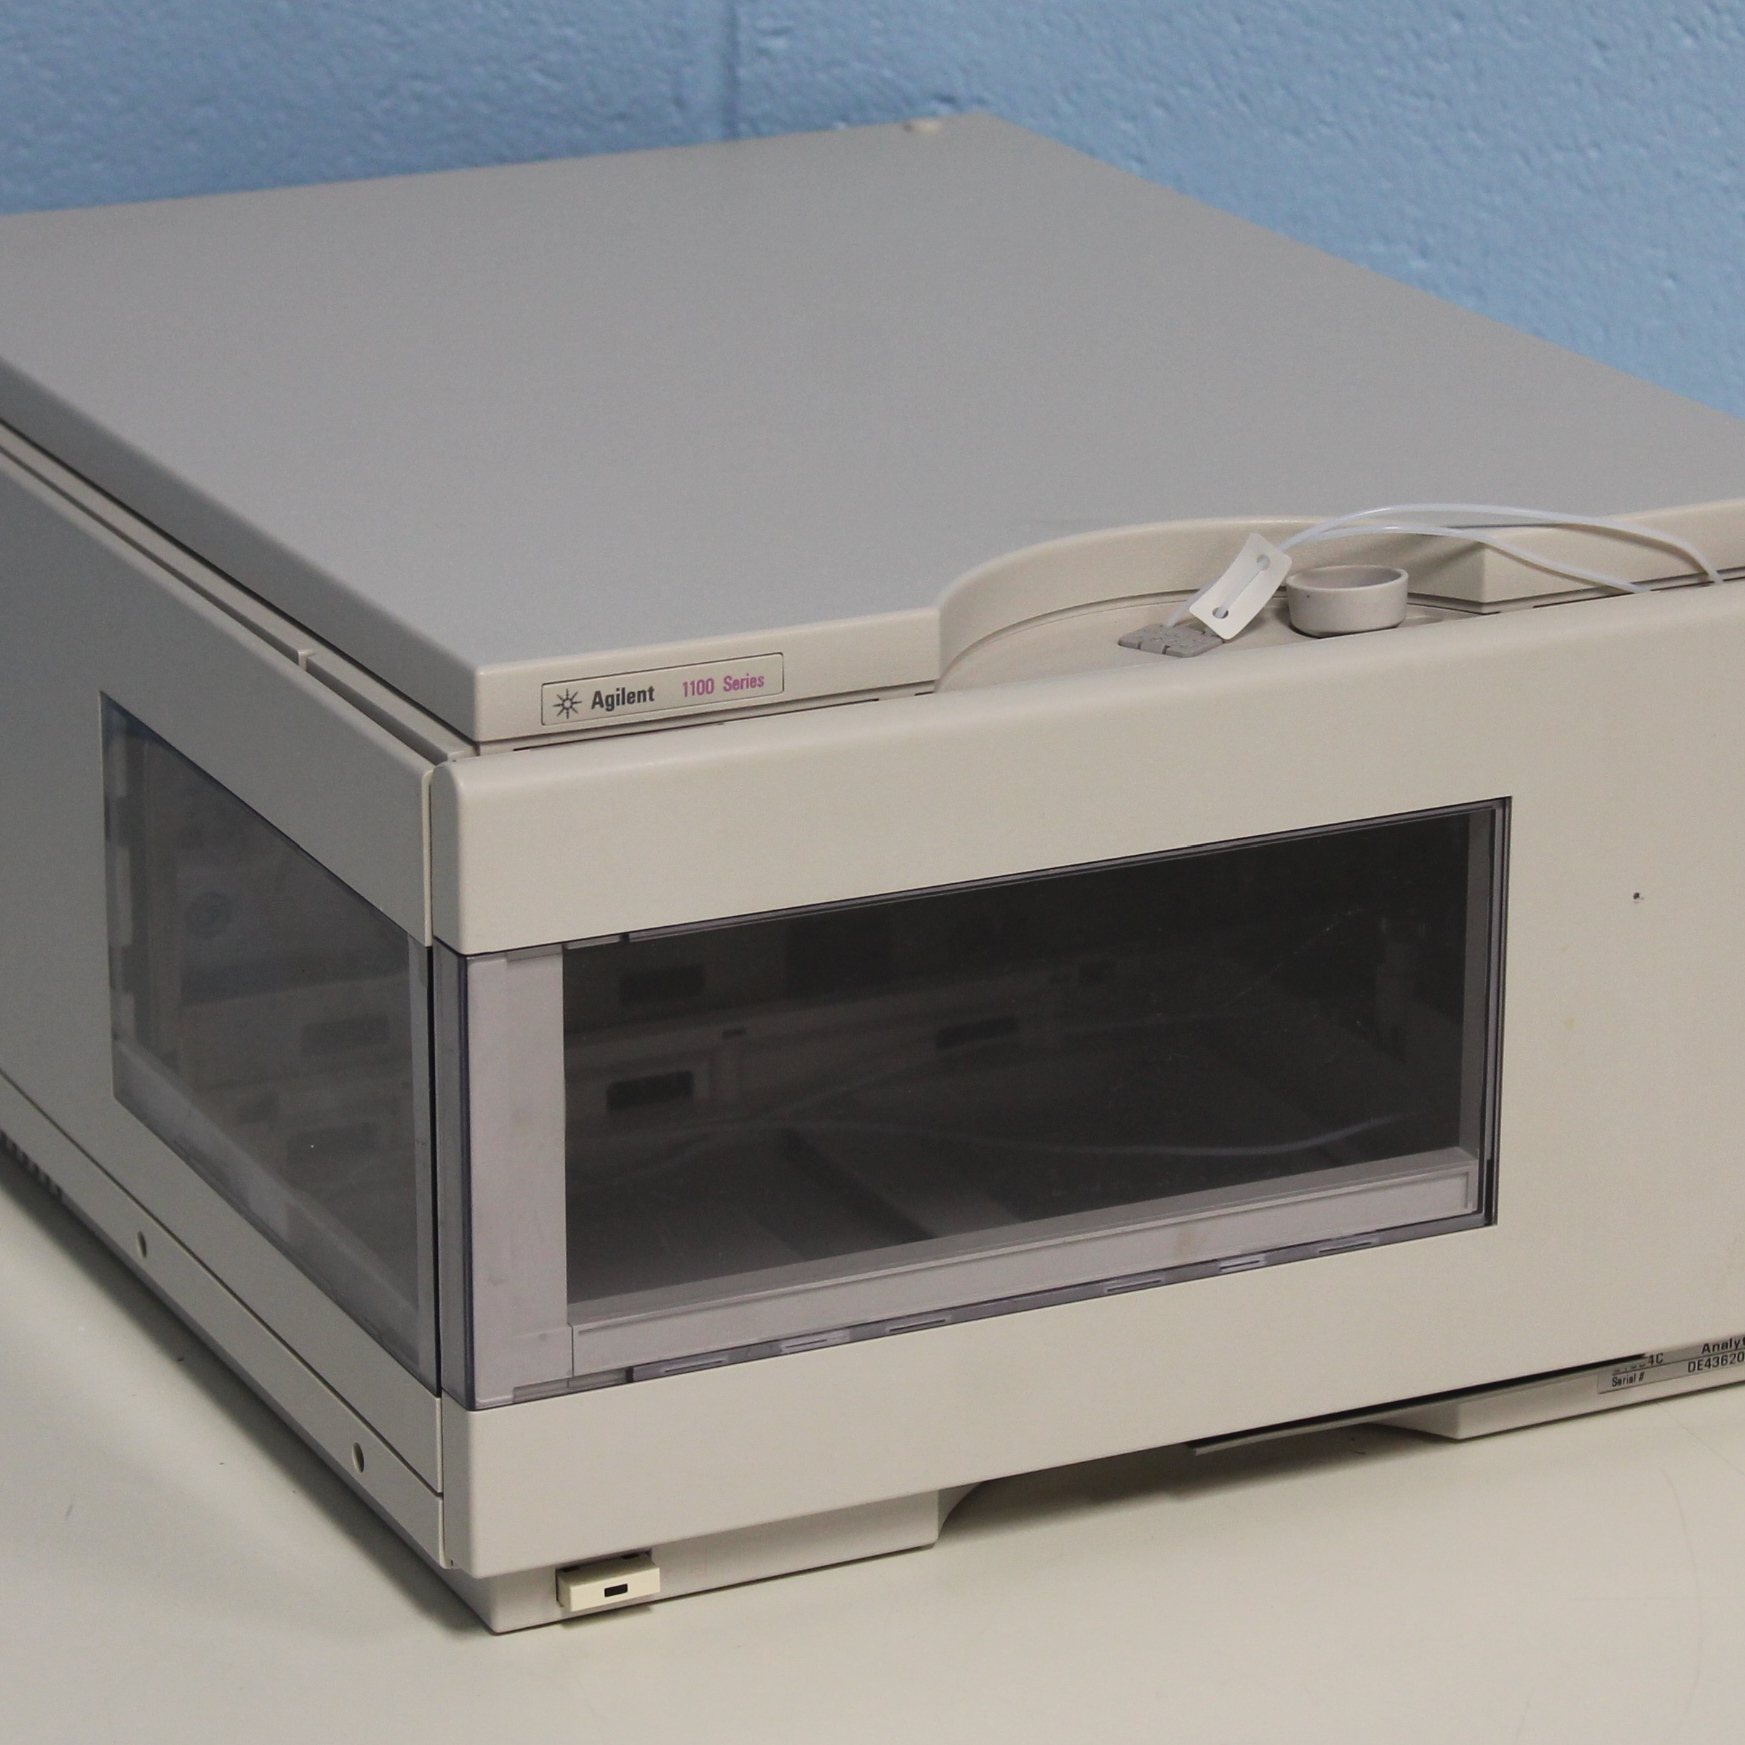 Agilent Technologies 1100 Series G1364C Analyst FC Fraction Collector Image